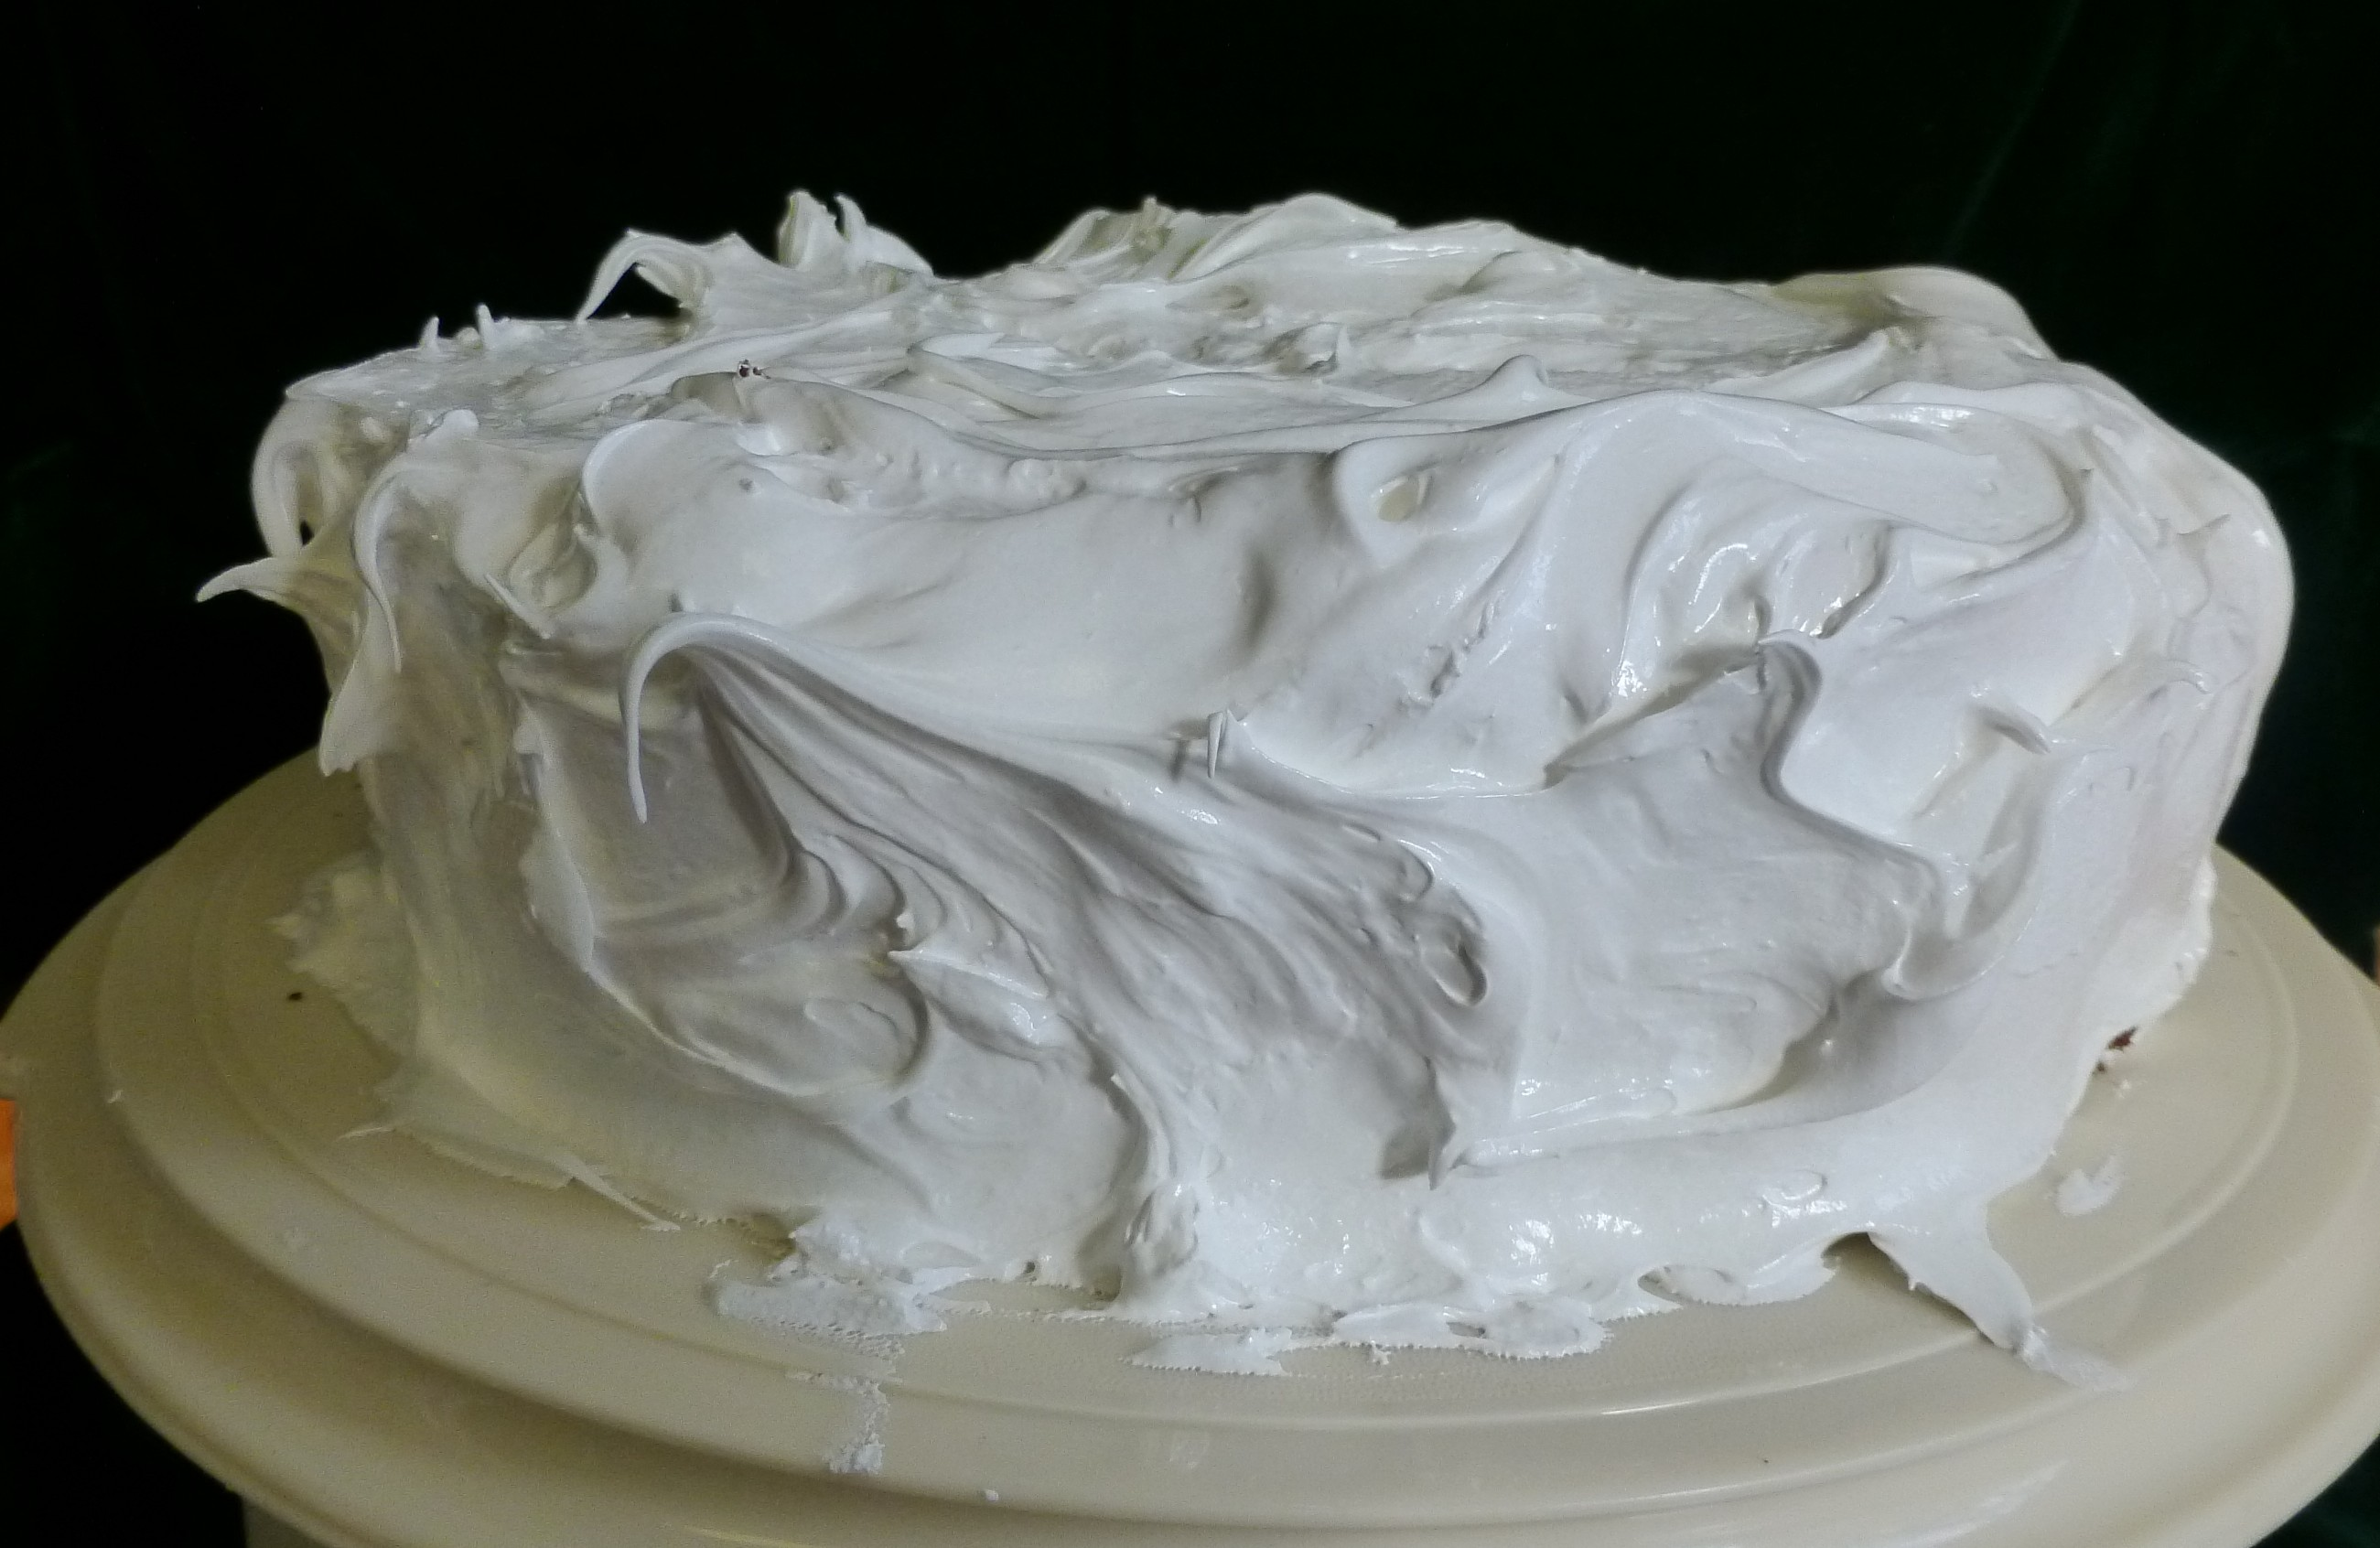 Devil's Food Cake with Fluffy White Icing